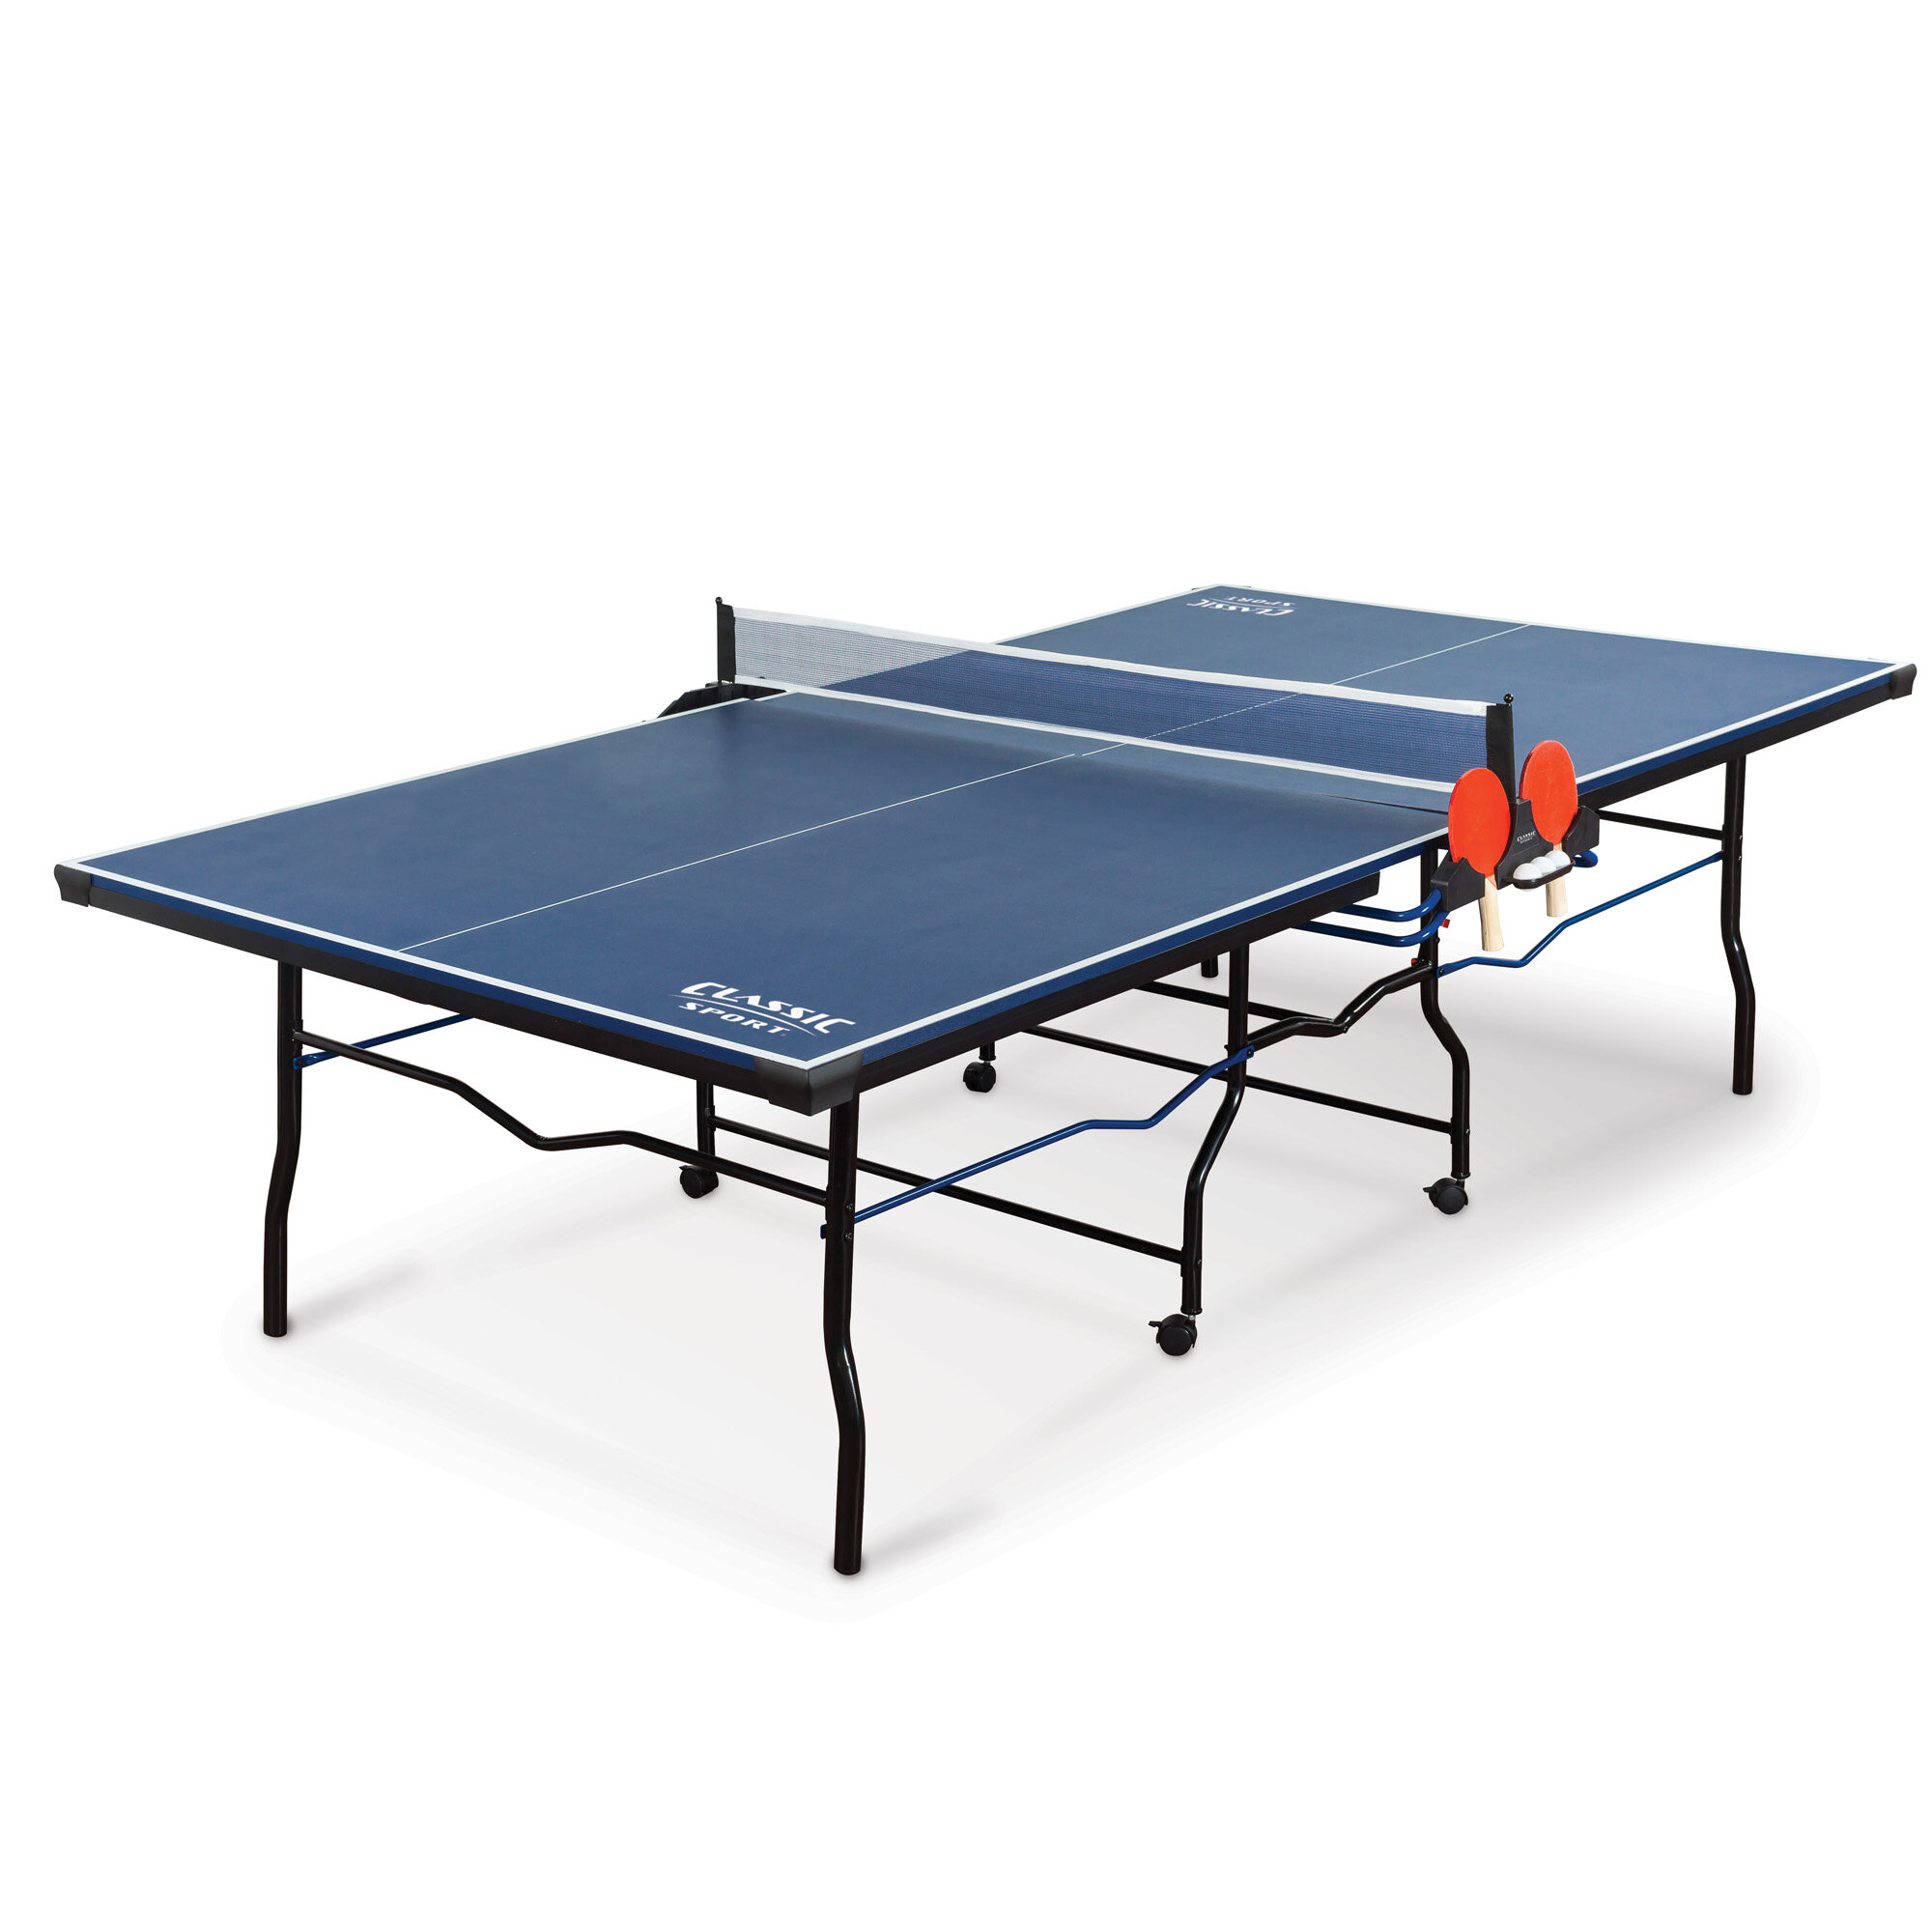 Classic Sport Regulation Size Foldable Indoor Table Tennis Table 18mm Thick Wayfair